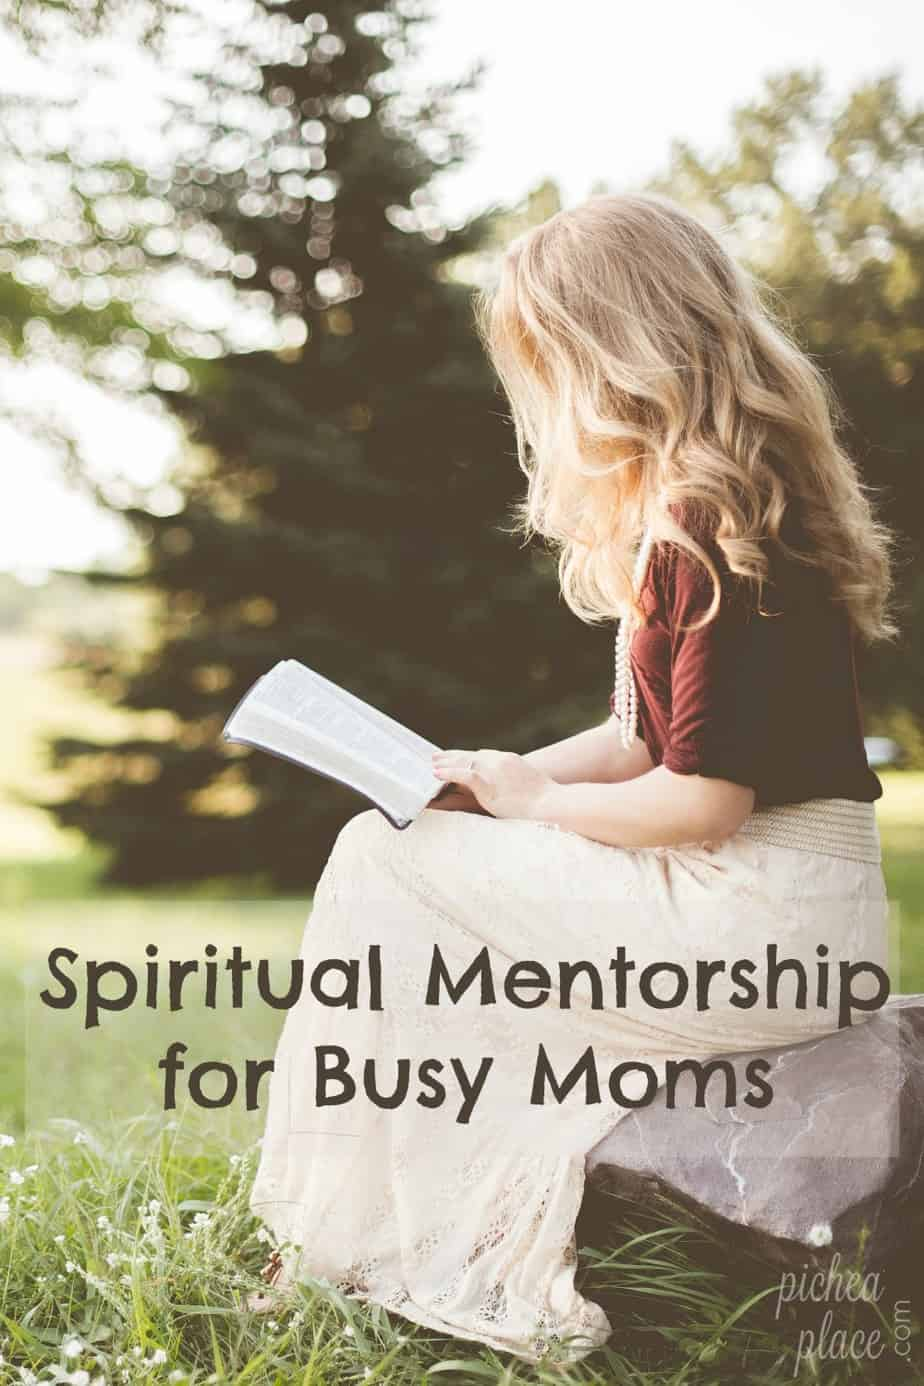 Spiritual Mentorship for Busy Moms: filling the gap in my busy life with books that encourage me in my spiritual growth and development